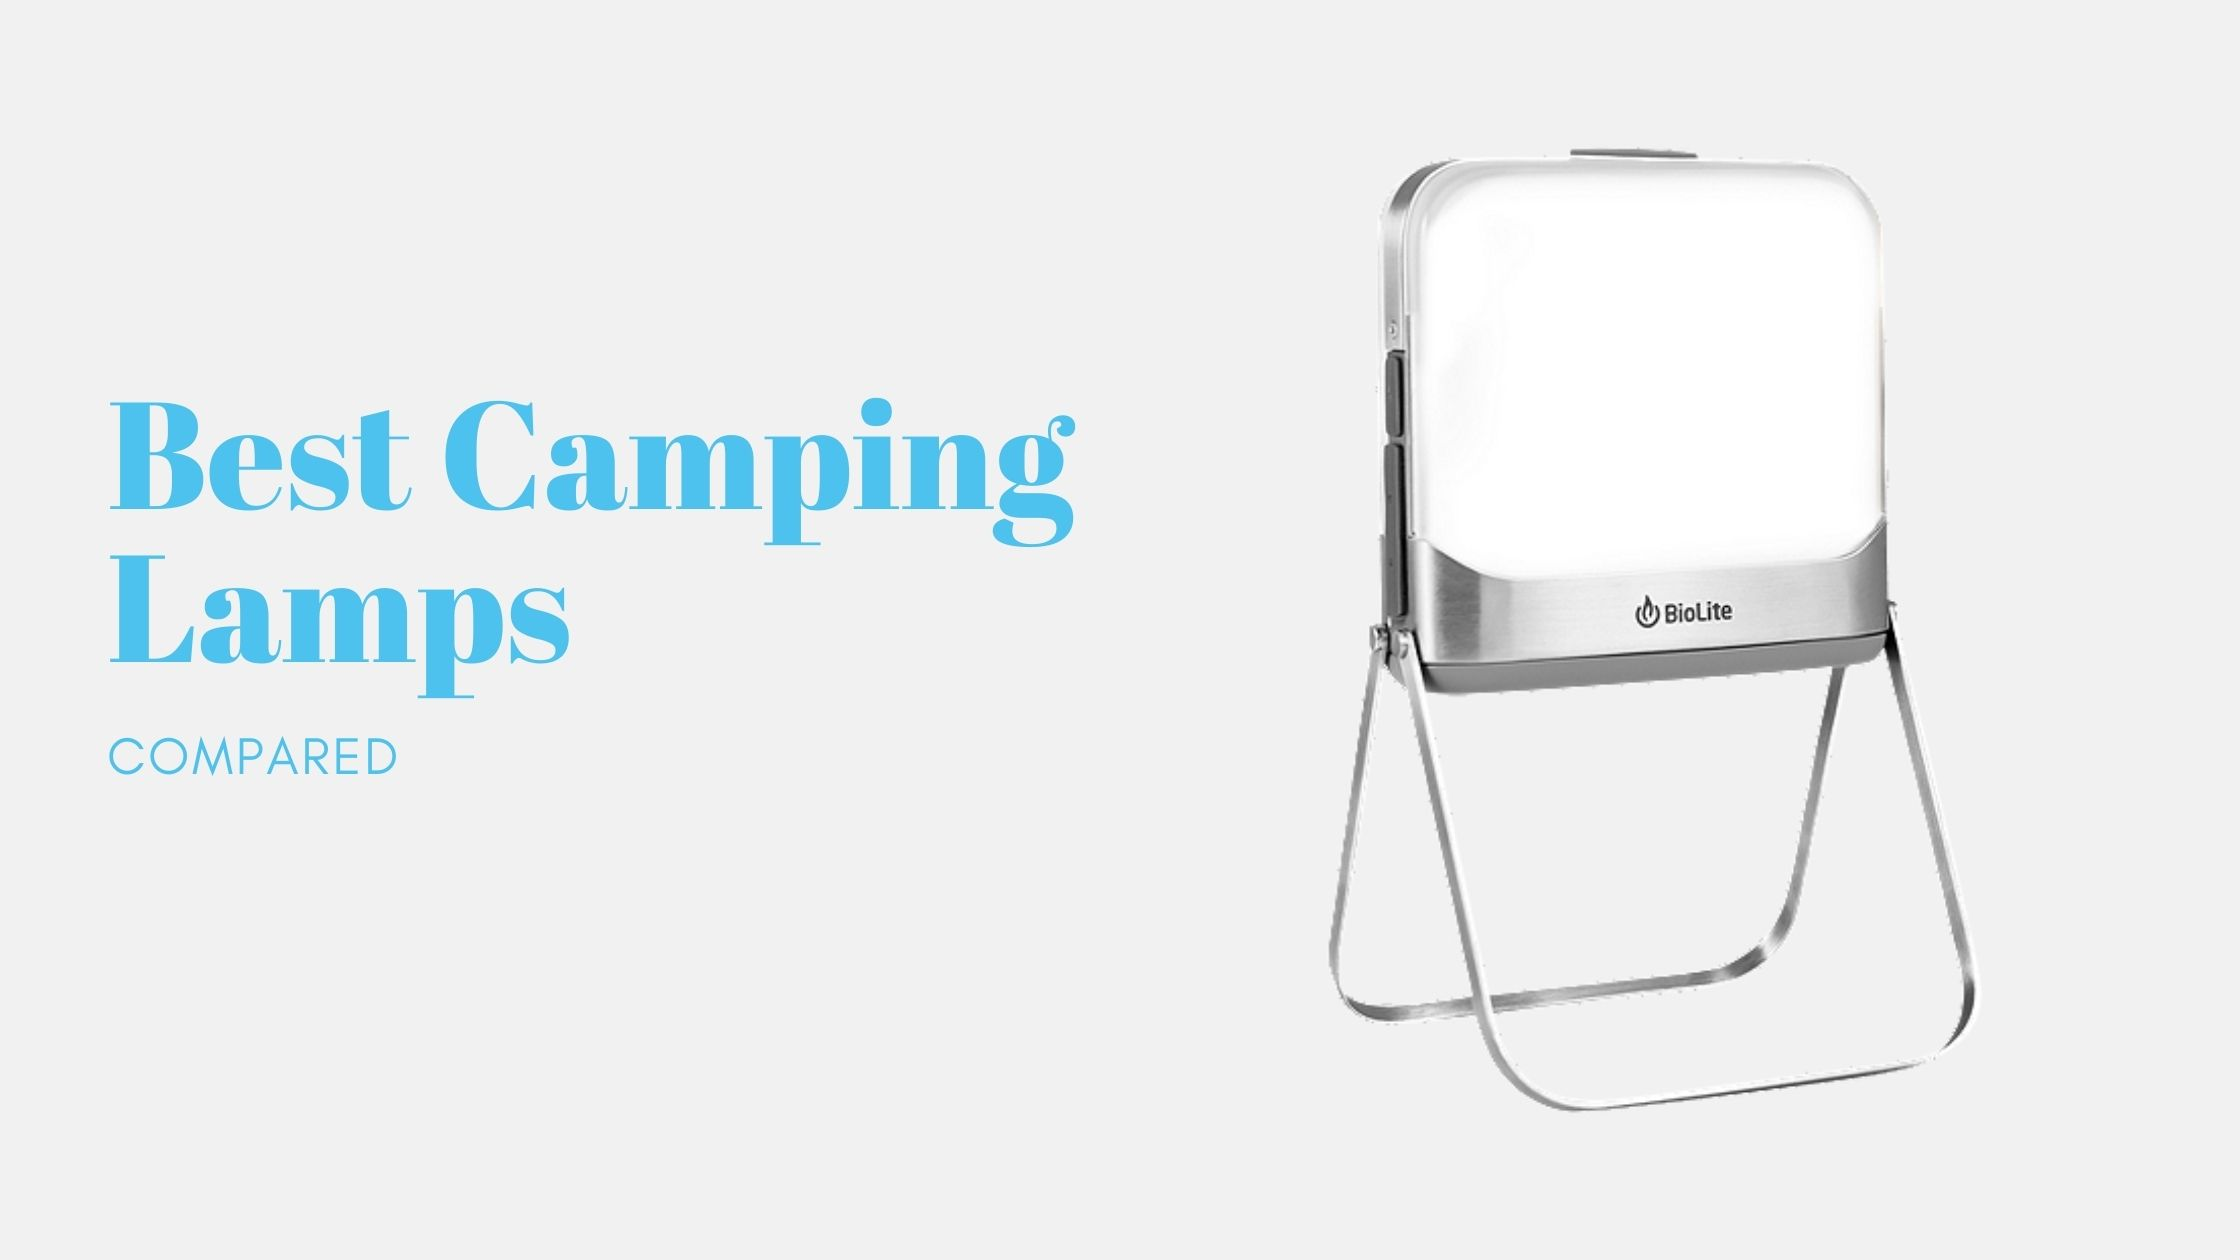 5 Best Camping Lamps Compared